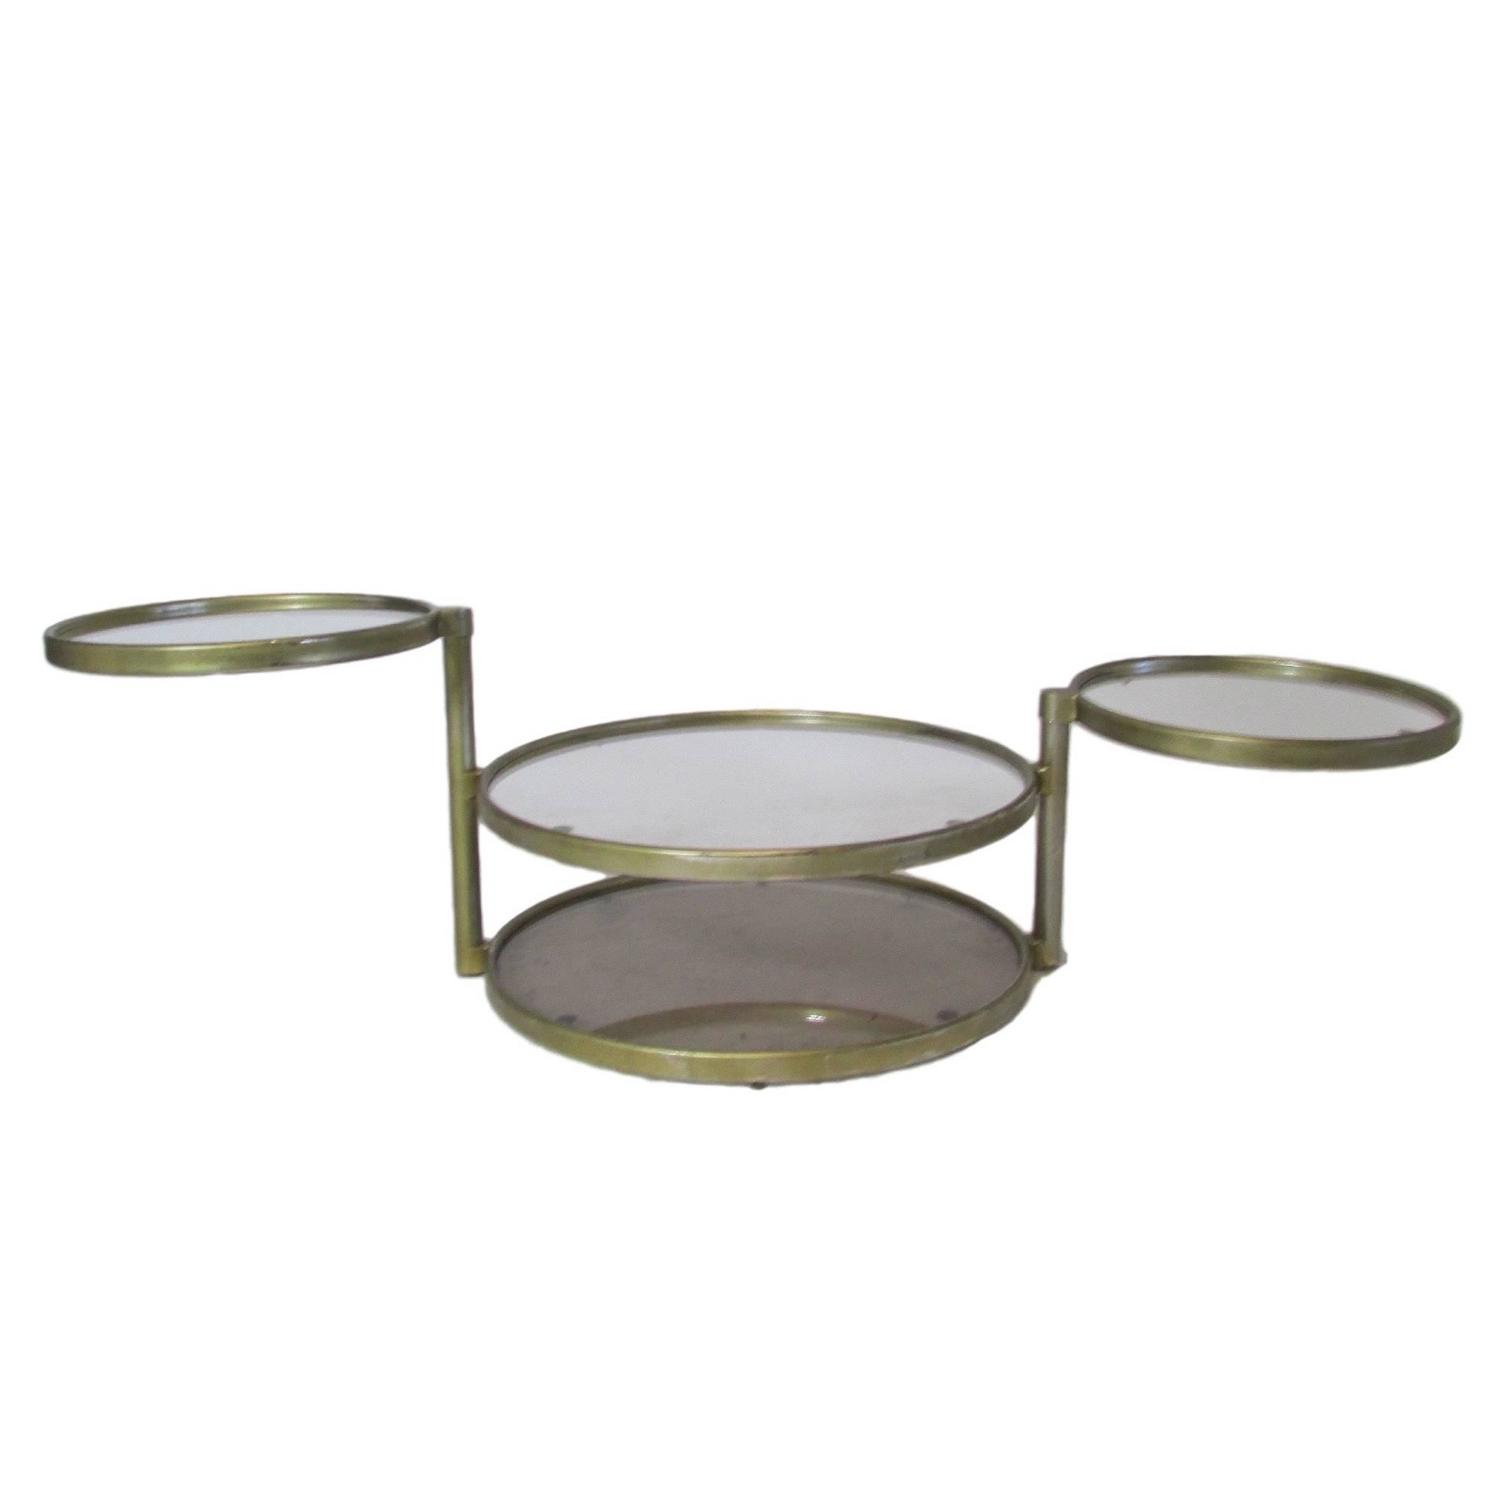 Circular four tiered swivel coffee table at 1stdibs for Swivel coffee table